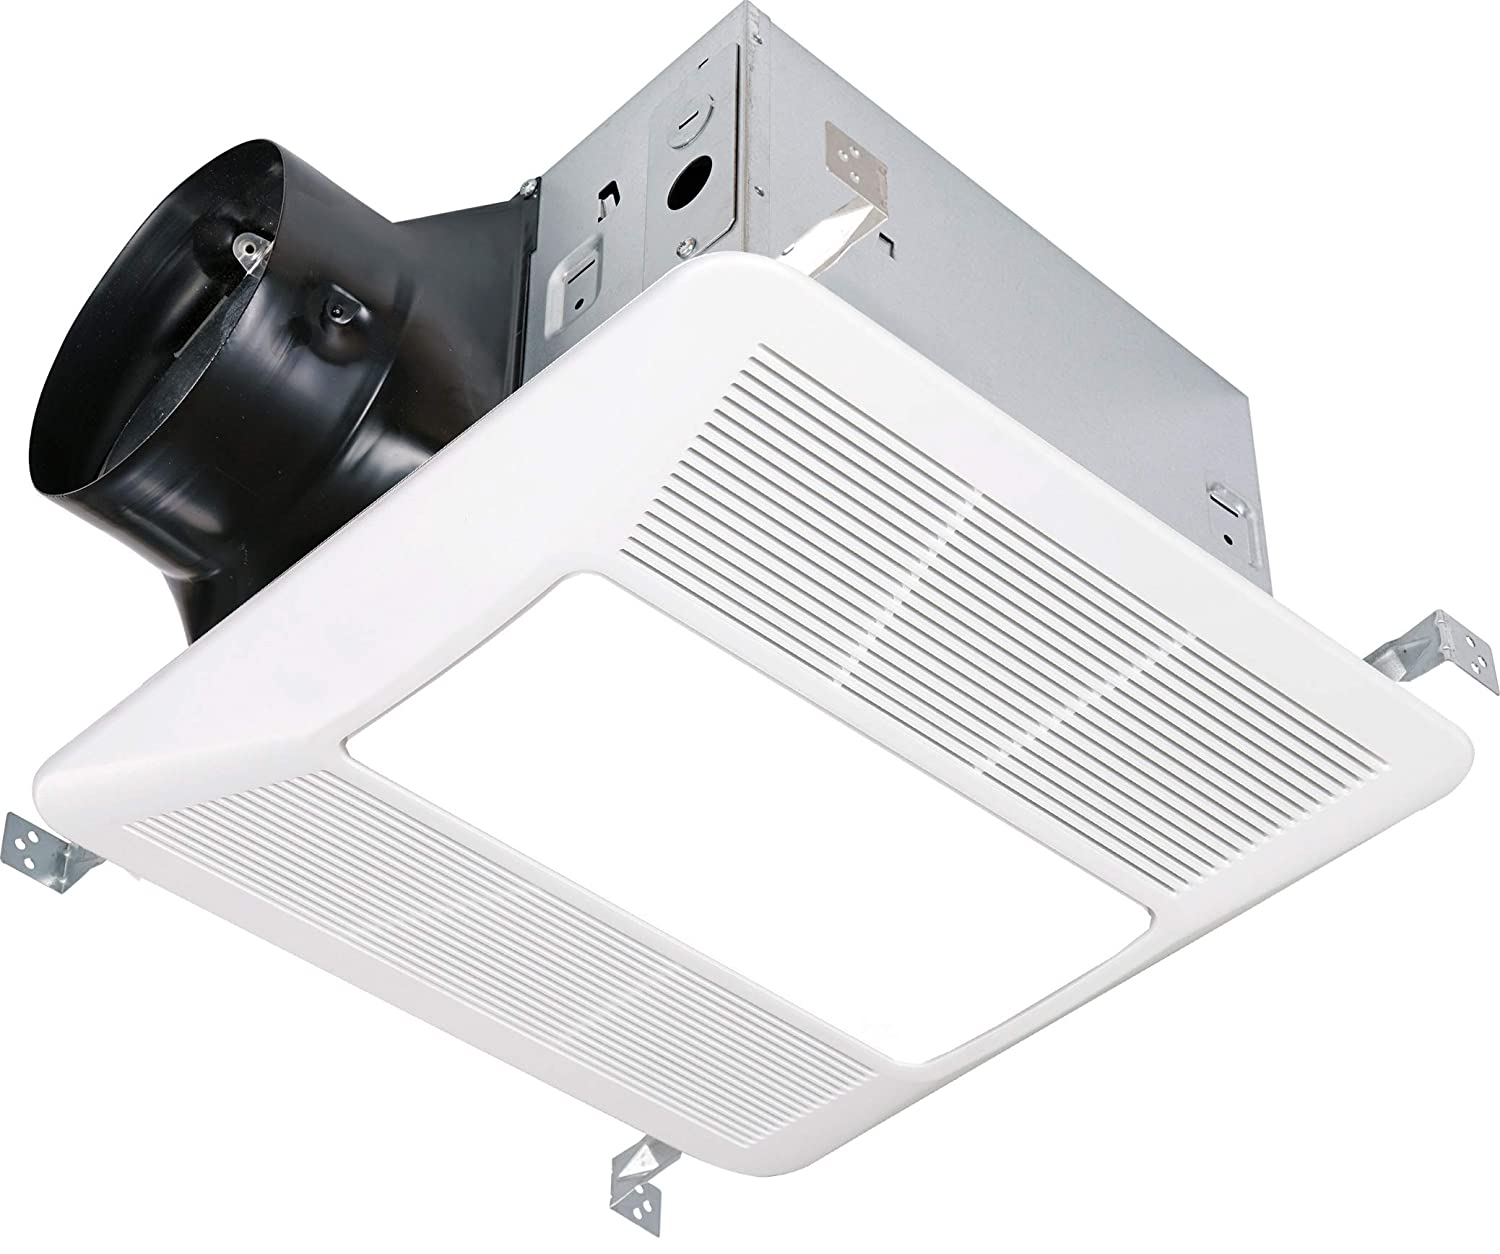 Kaze Appliance Ultra Quiet Bathroom Exhaust Fan With Led Light And Night Light 120 Cfm 0 3 Sone